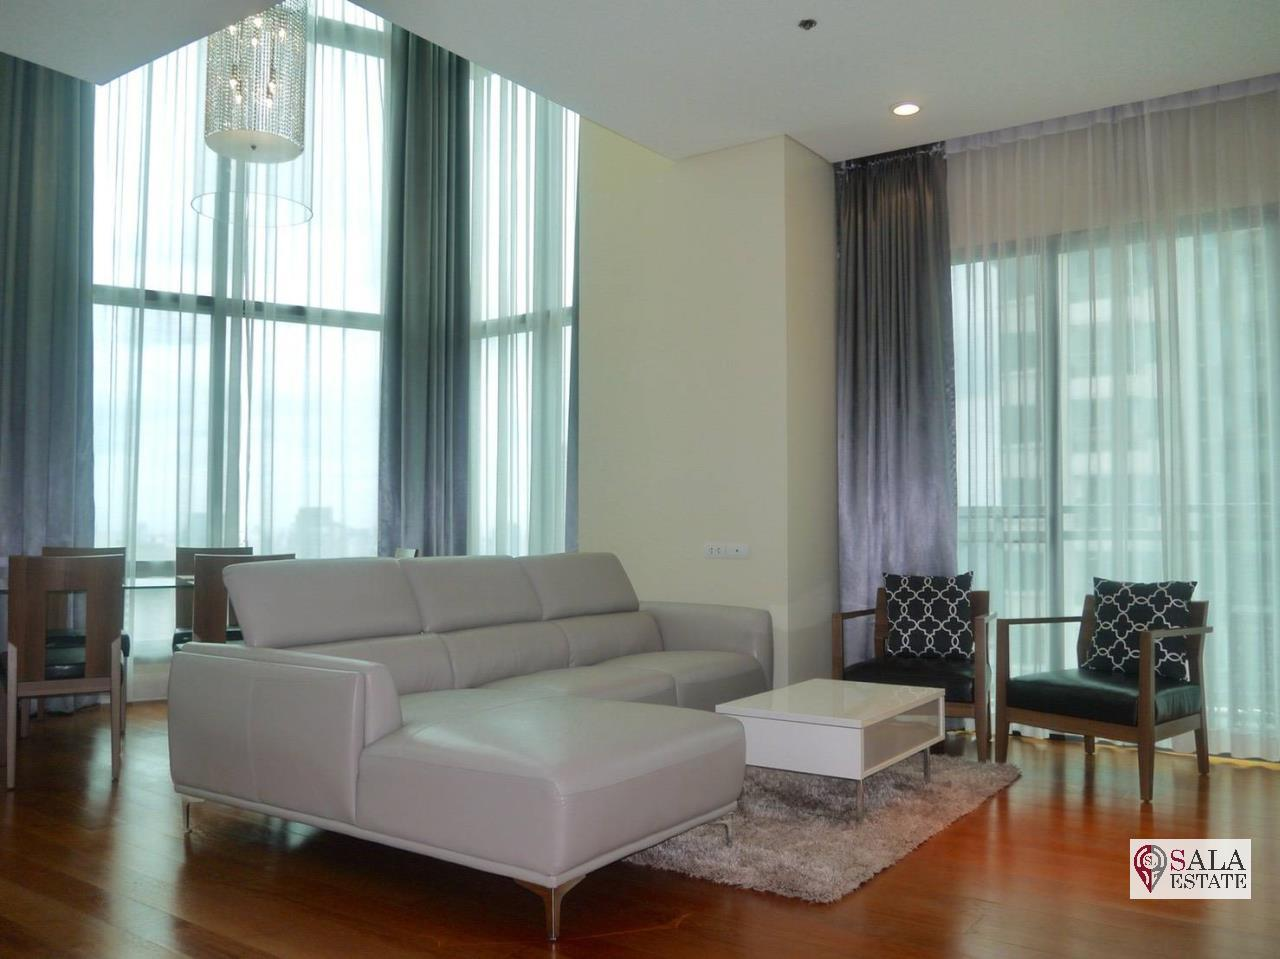 SALA ESTATE Agency's (FOR RENT) BRIGHT SUKHUMVIT 24 - BTS PHROM PHONG, DUPLEX TYPE,3 BEDROOMS 3 BATHROOMS, FULLY FURNISHED,CITY VIEW,HIGH FLOOR 4